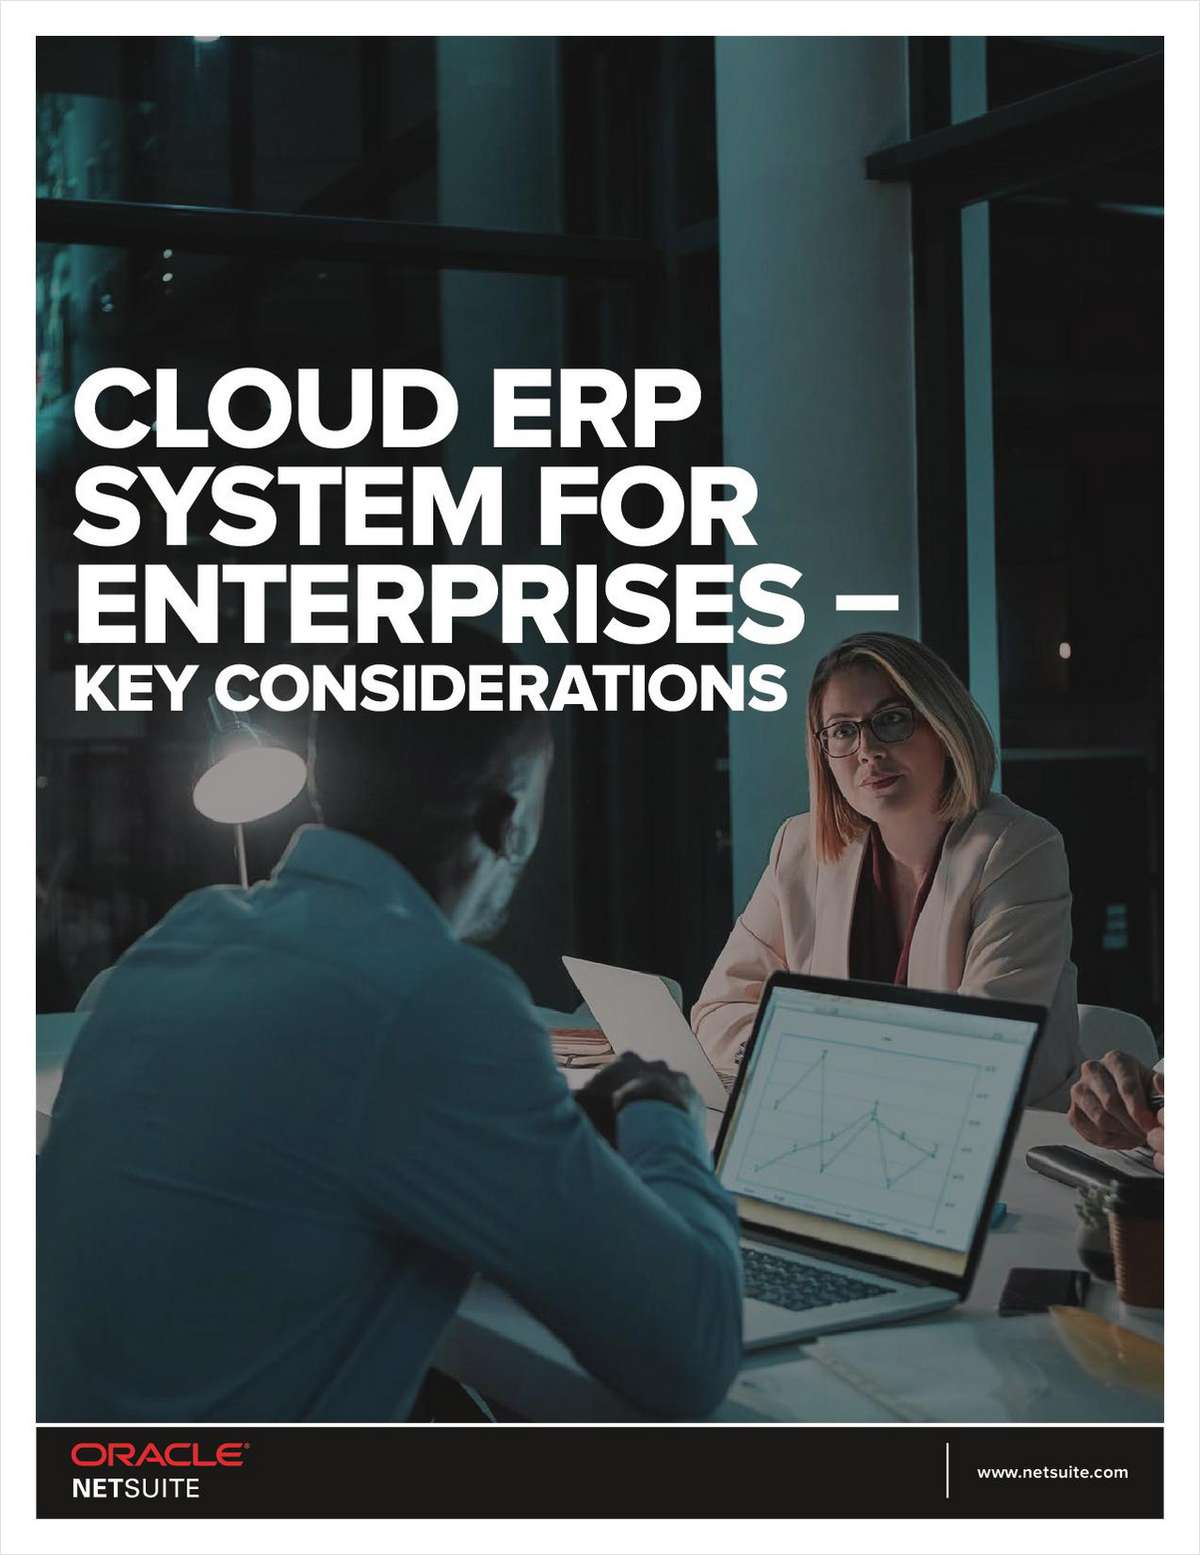 Cloud ERP System for Enterprises - Key Considerations